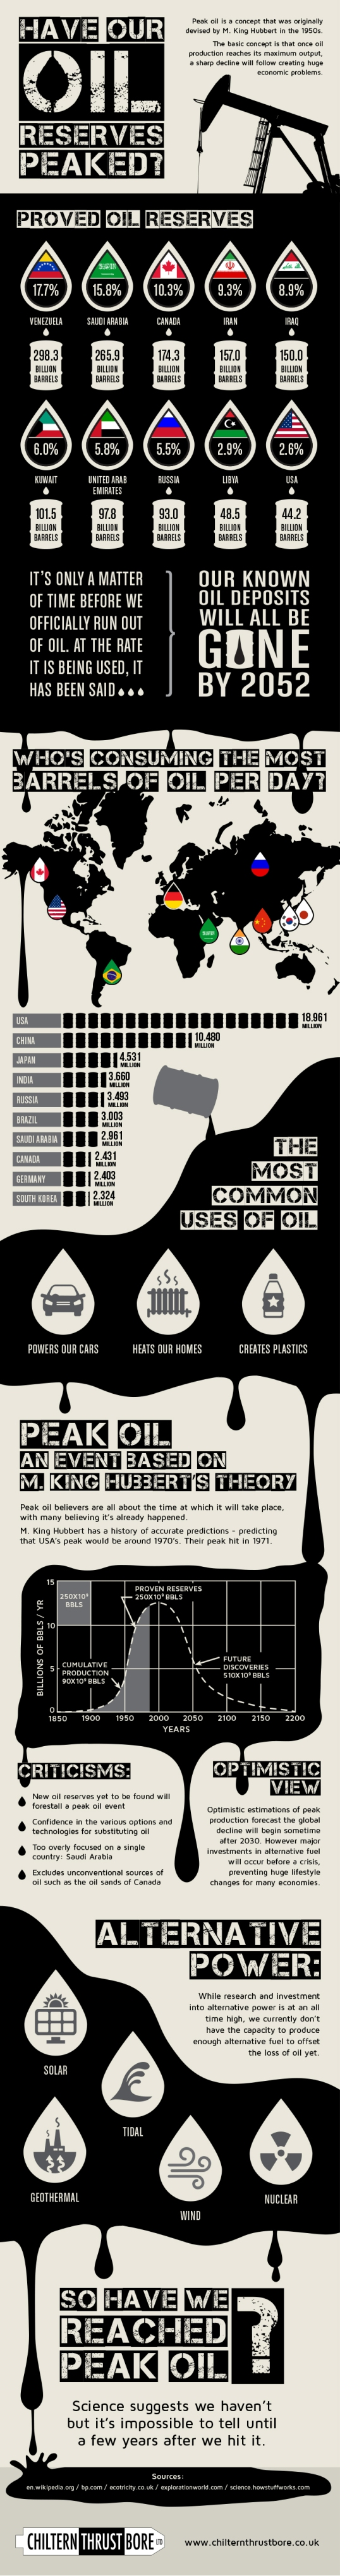 Peak-Oil-InforGraphic